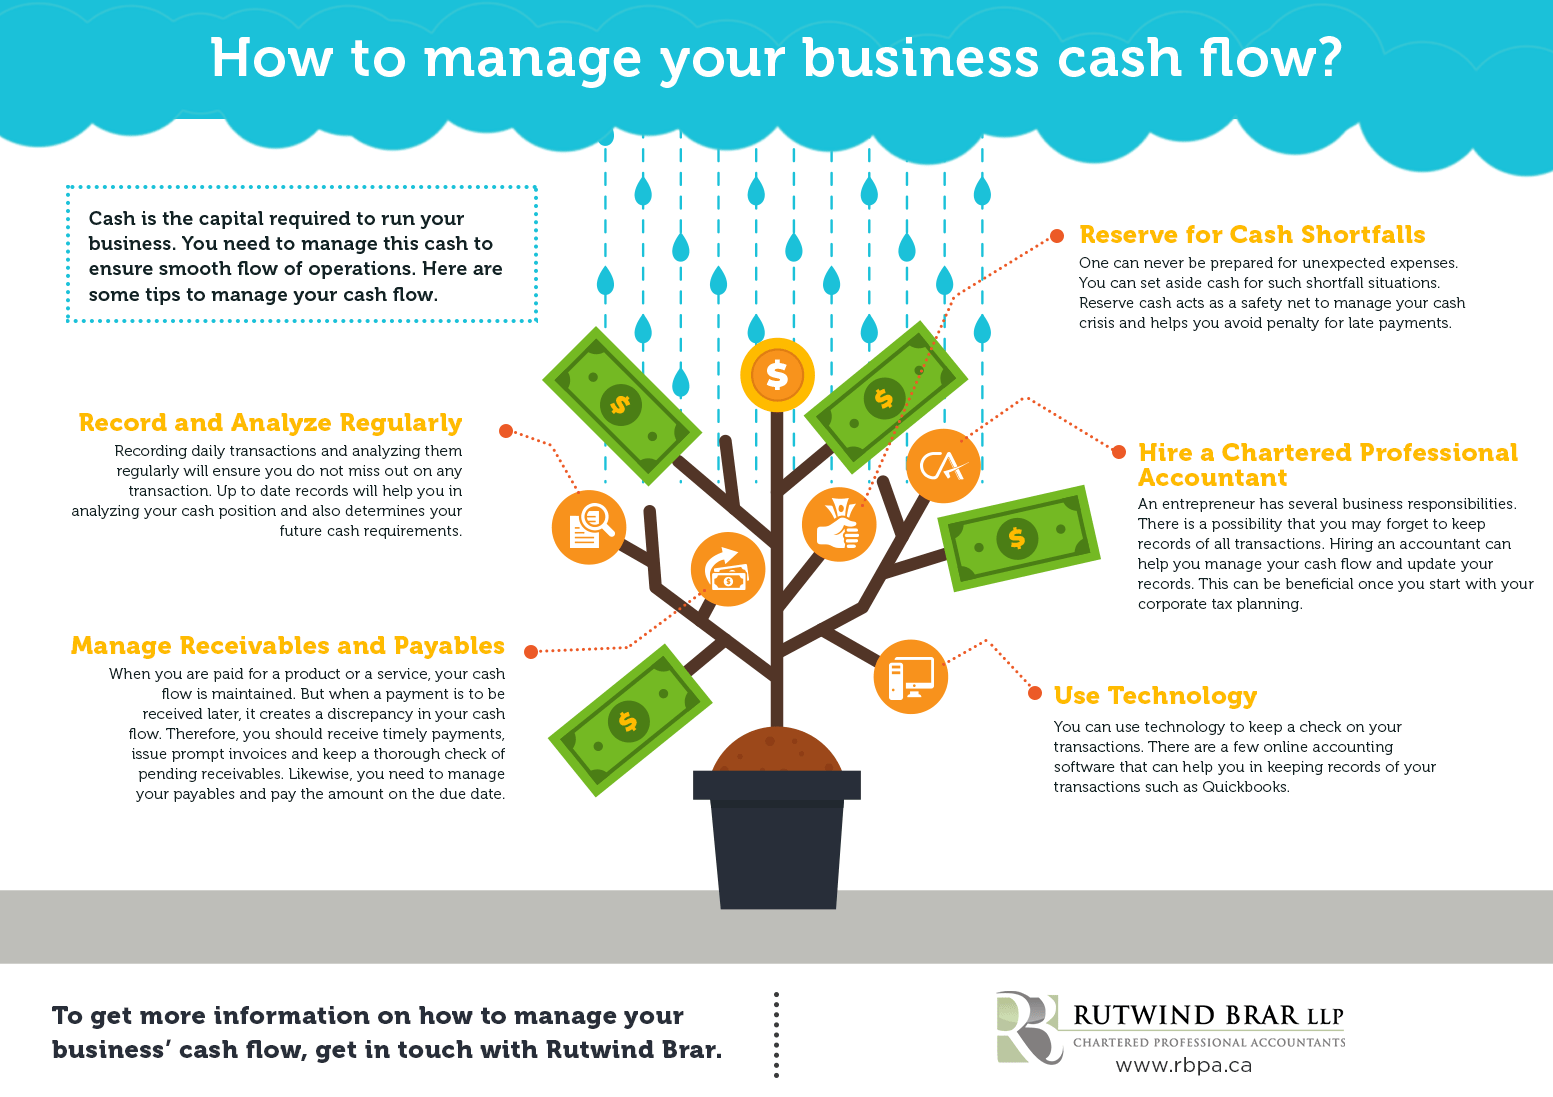 How To Manage Your Business Cash Flow Rutwind Brar Llp